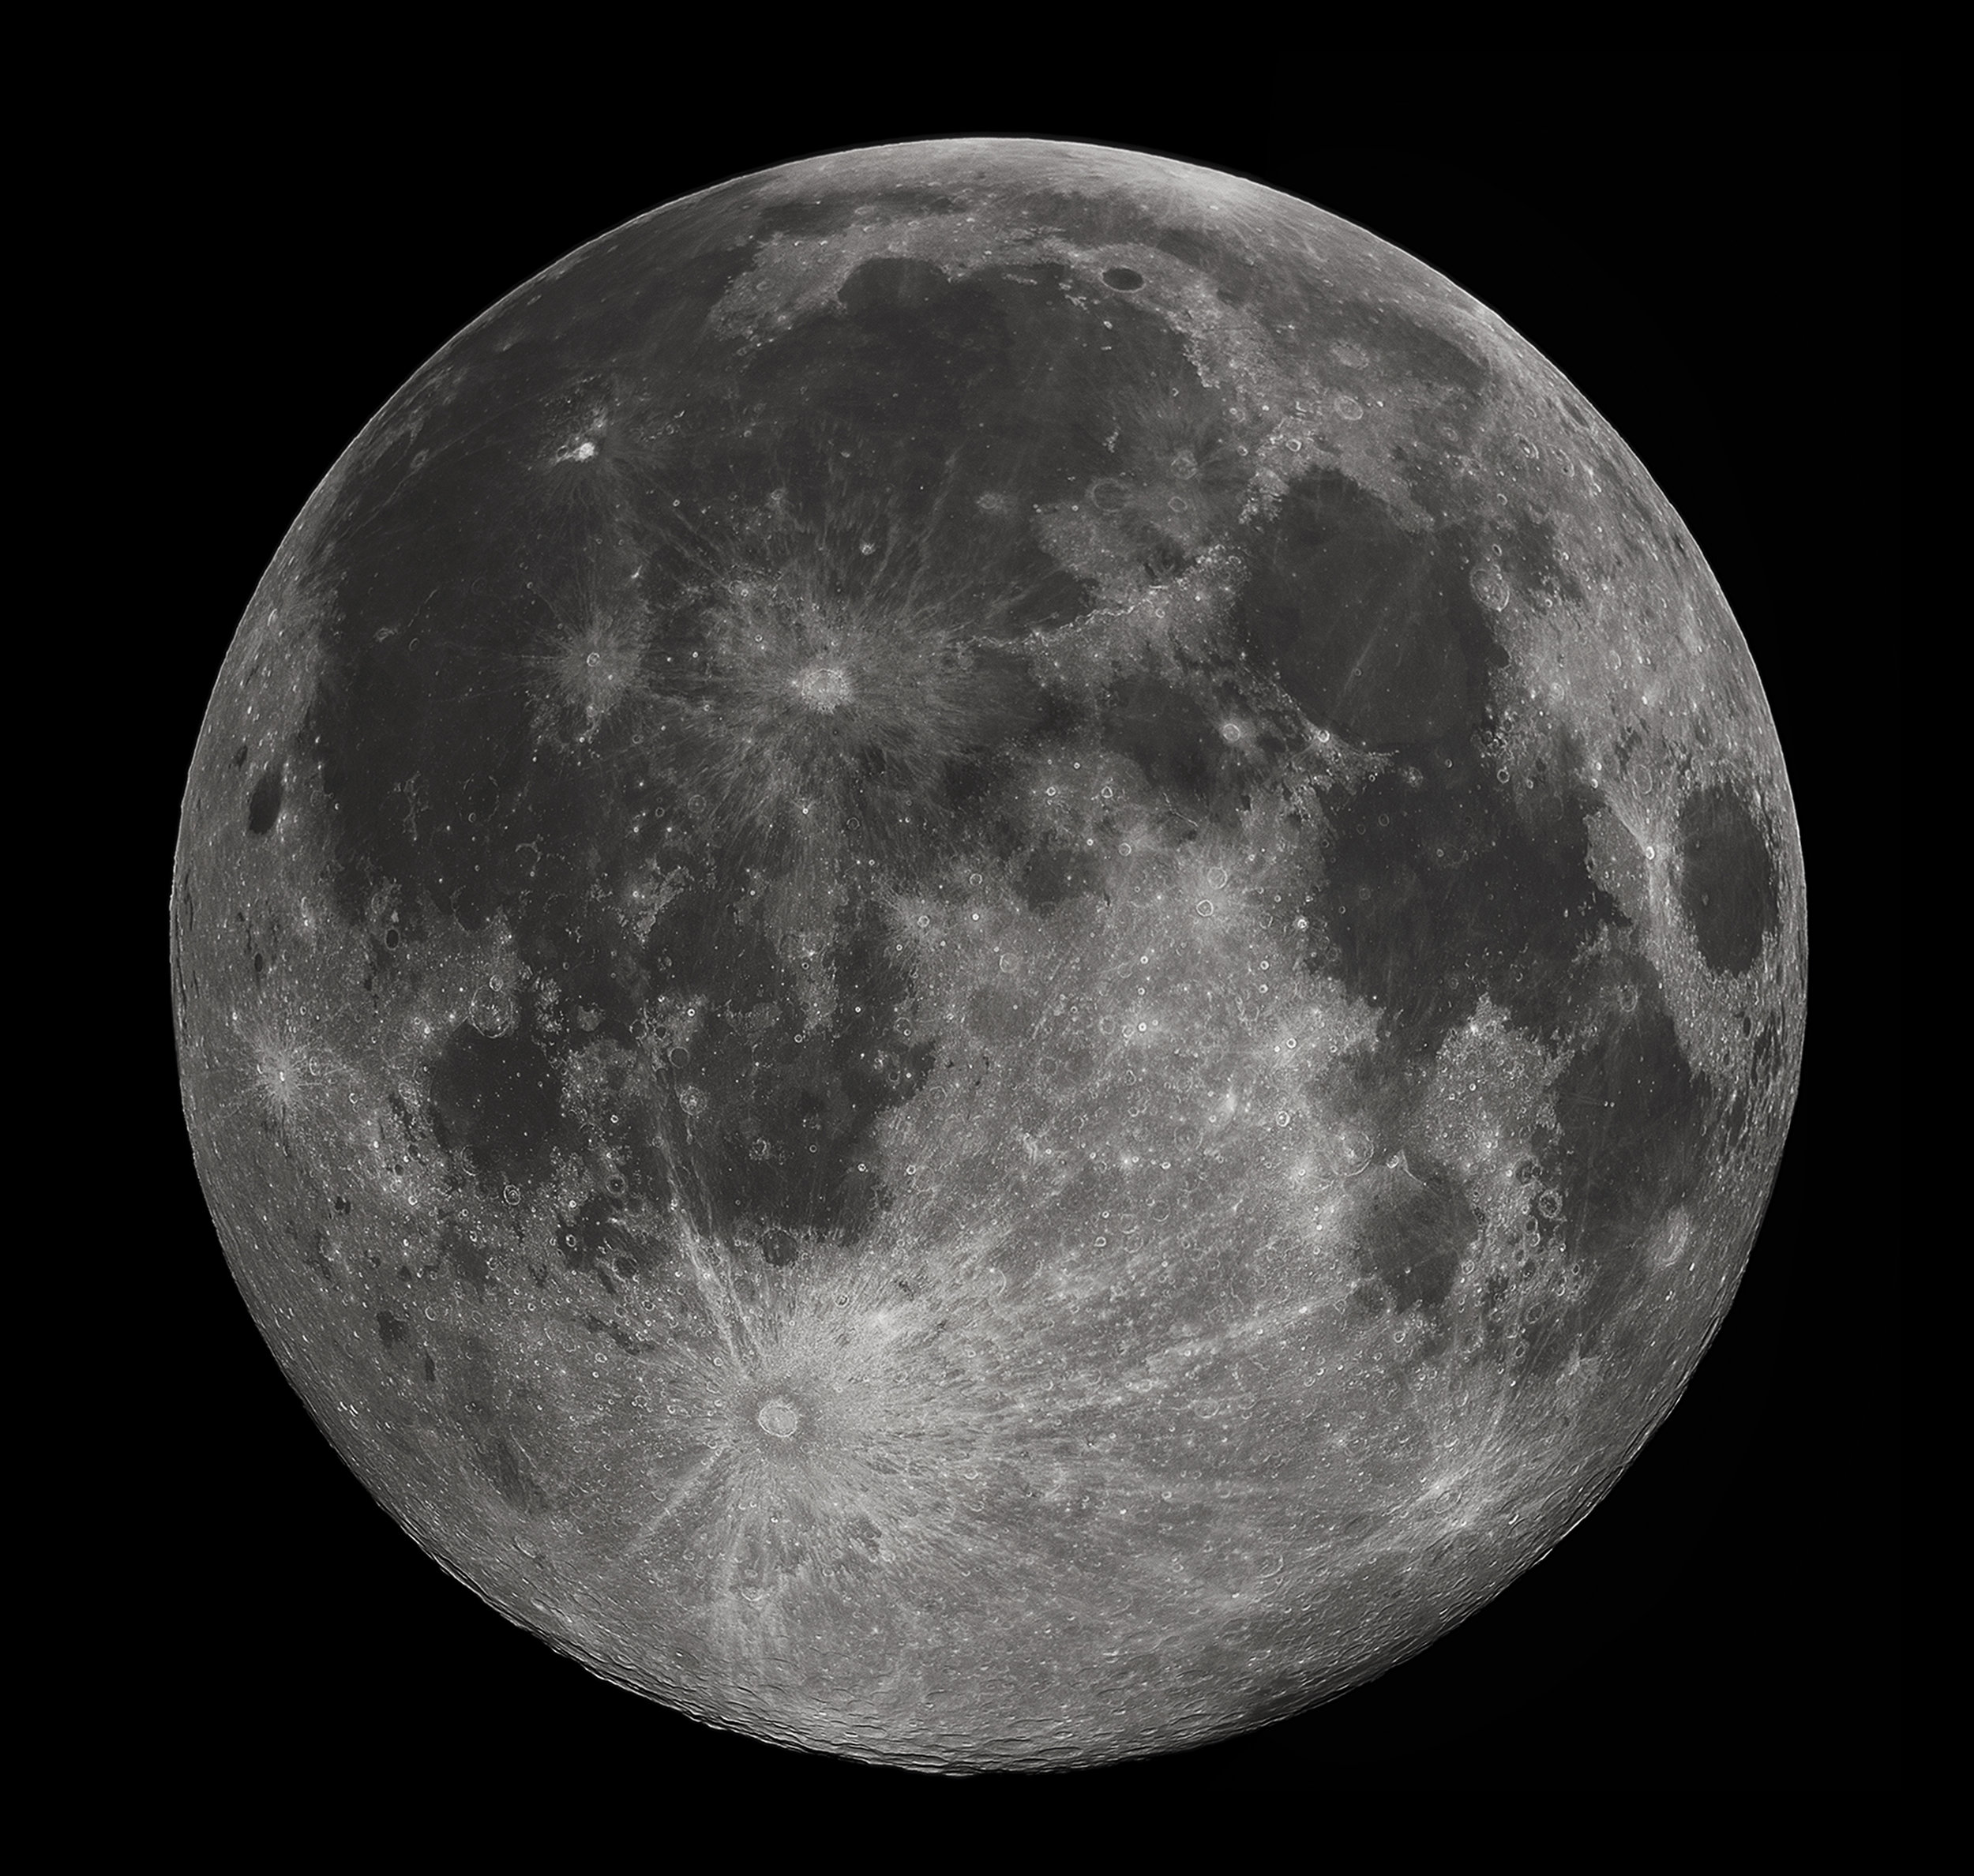 Full Moon photograph taken 10-22-2010 from Madison, Alabama, USA. Photographed with a Celestron 9.25 Schmidt-Cassegrain telescope. Image credit: Gregory H. Revera, CC BY A-SA 3.0